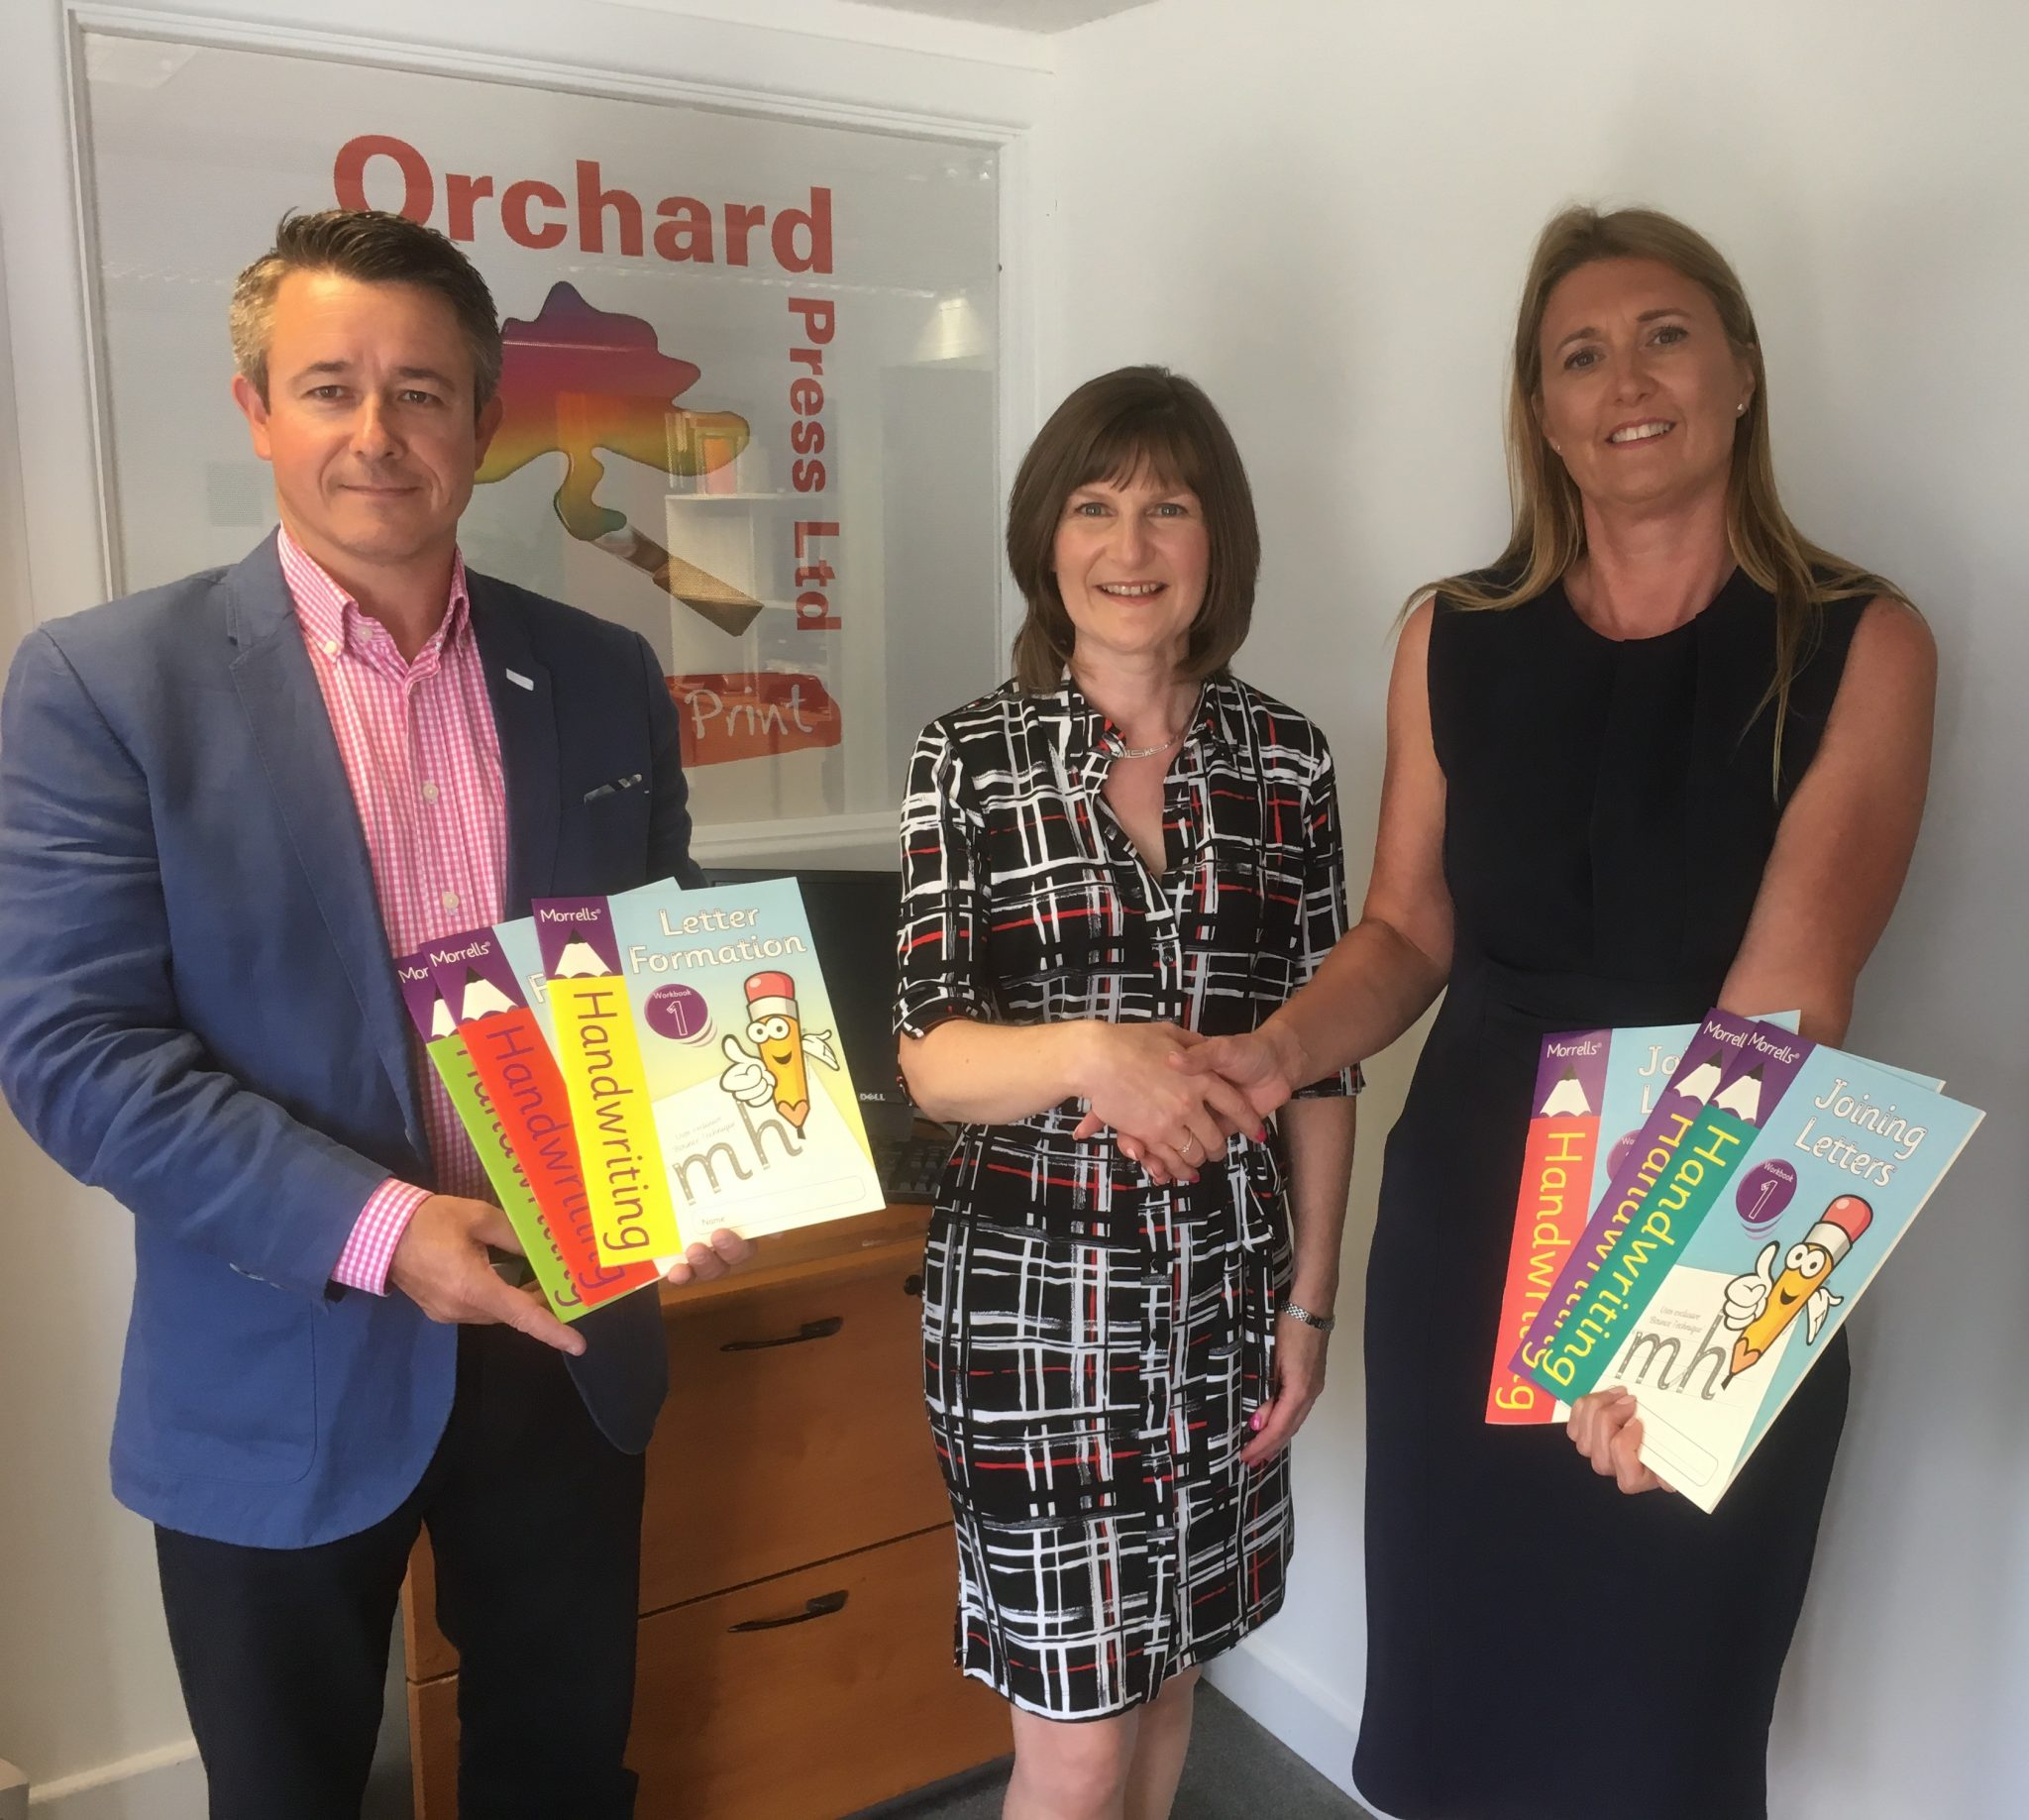 Morrells Handwriting partner with Orchard Press